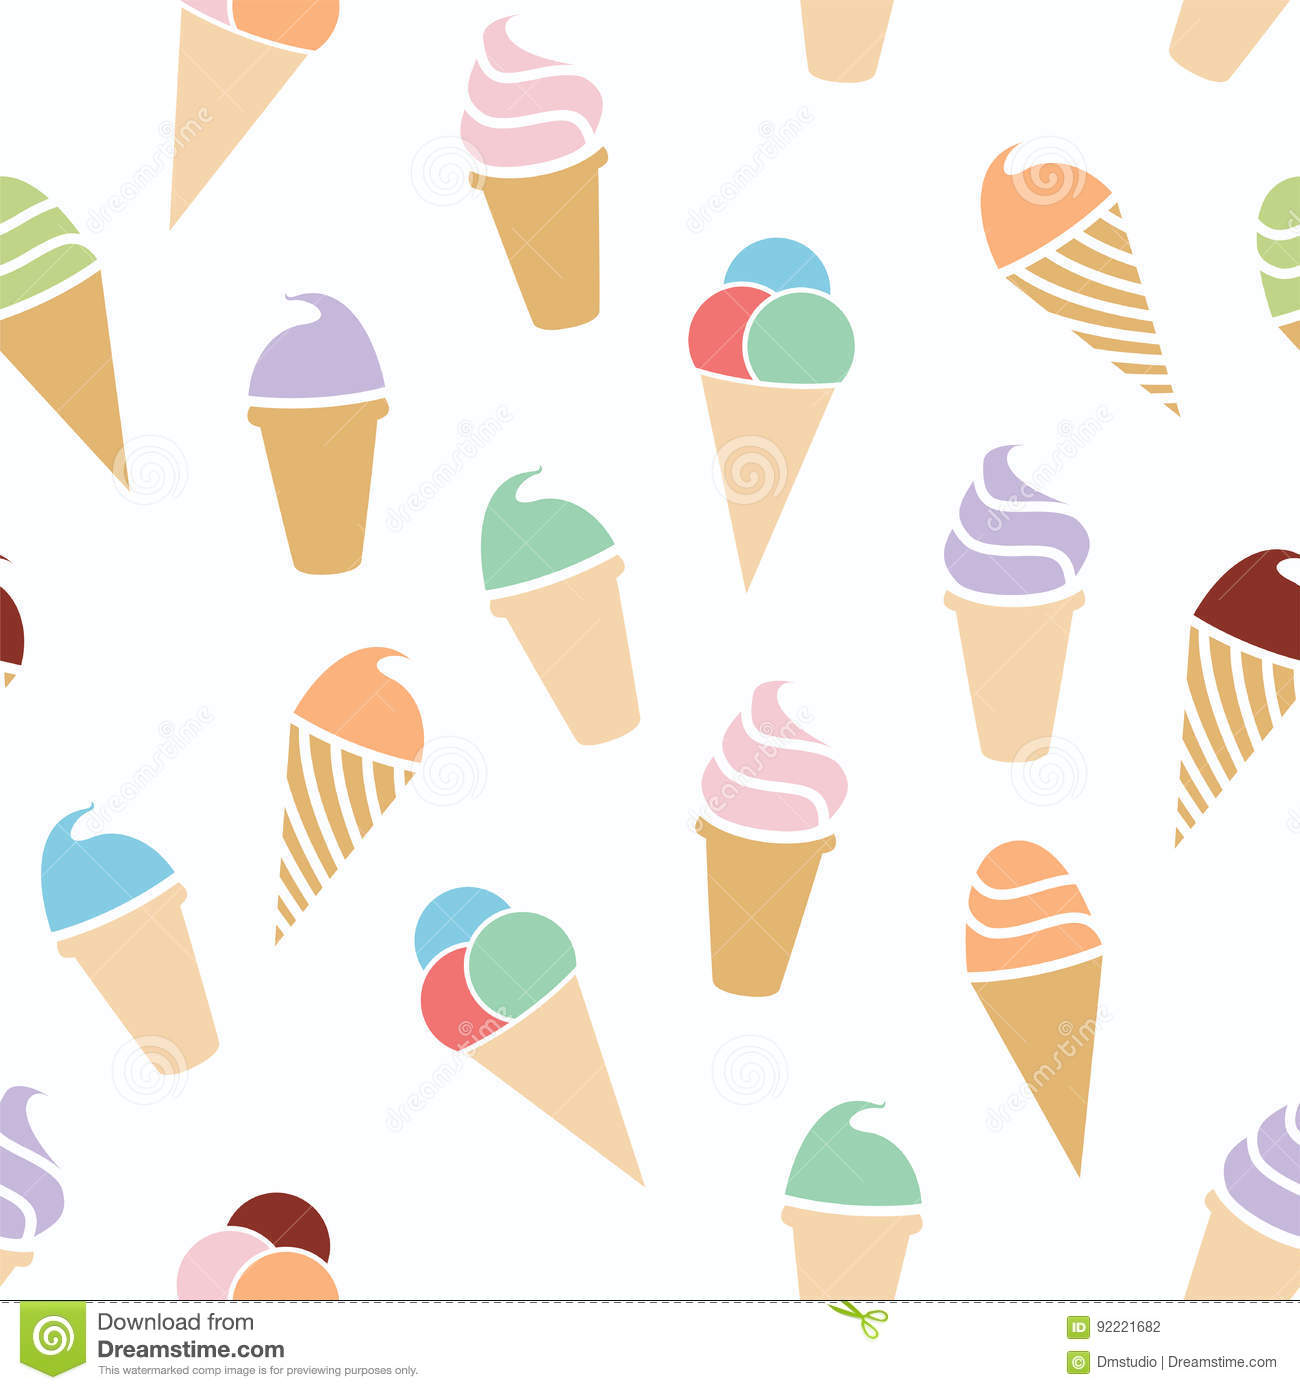 Sweet Ice Cream Flat Colorful Seamless Pattern Vector: Seamless Ice Cream Pattern, Vector Vector Illustration